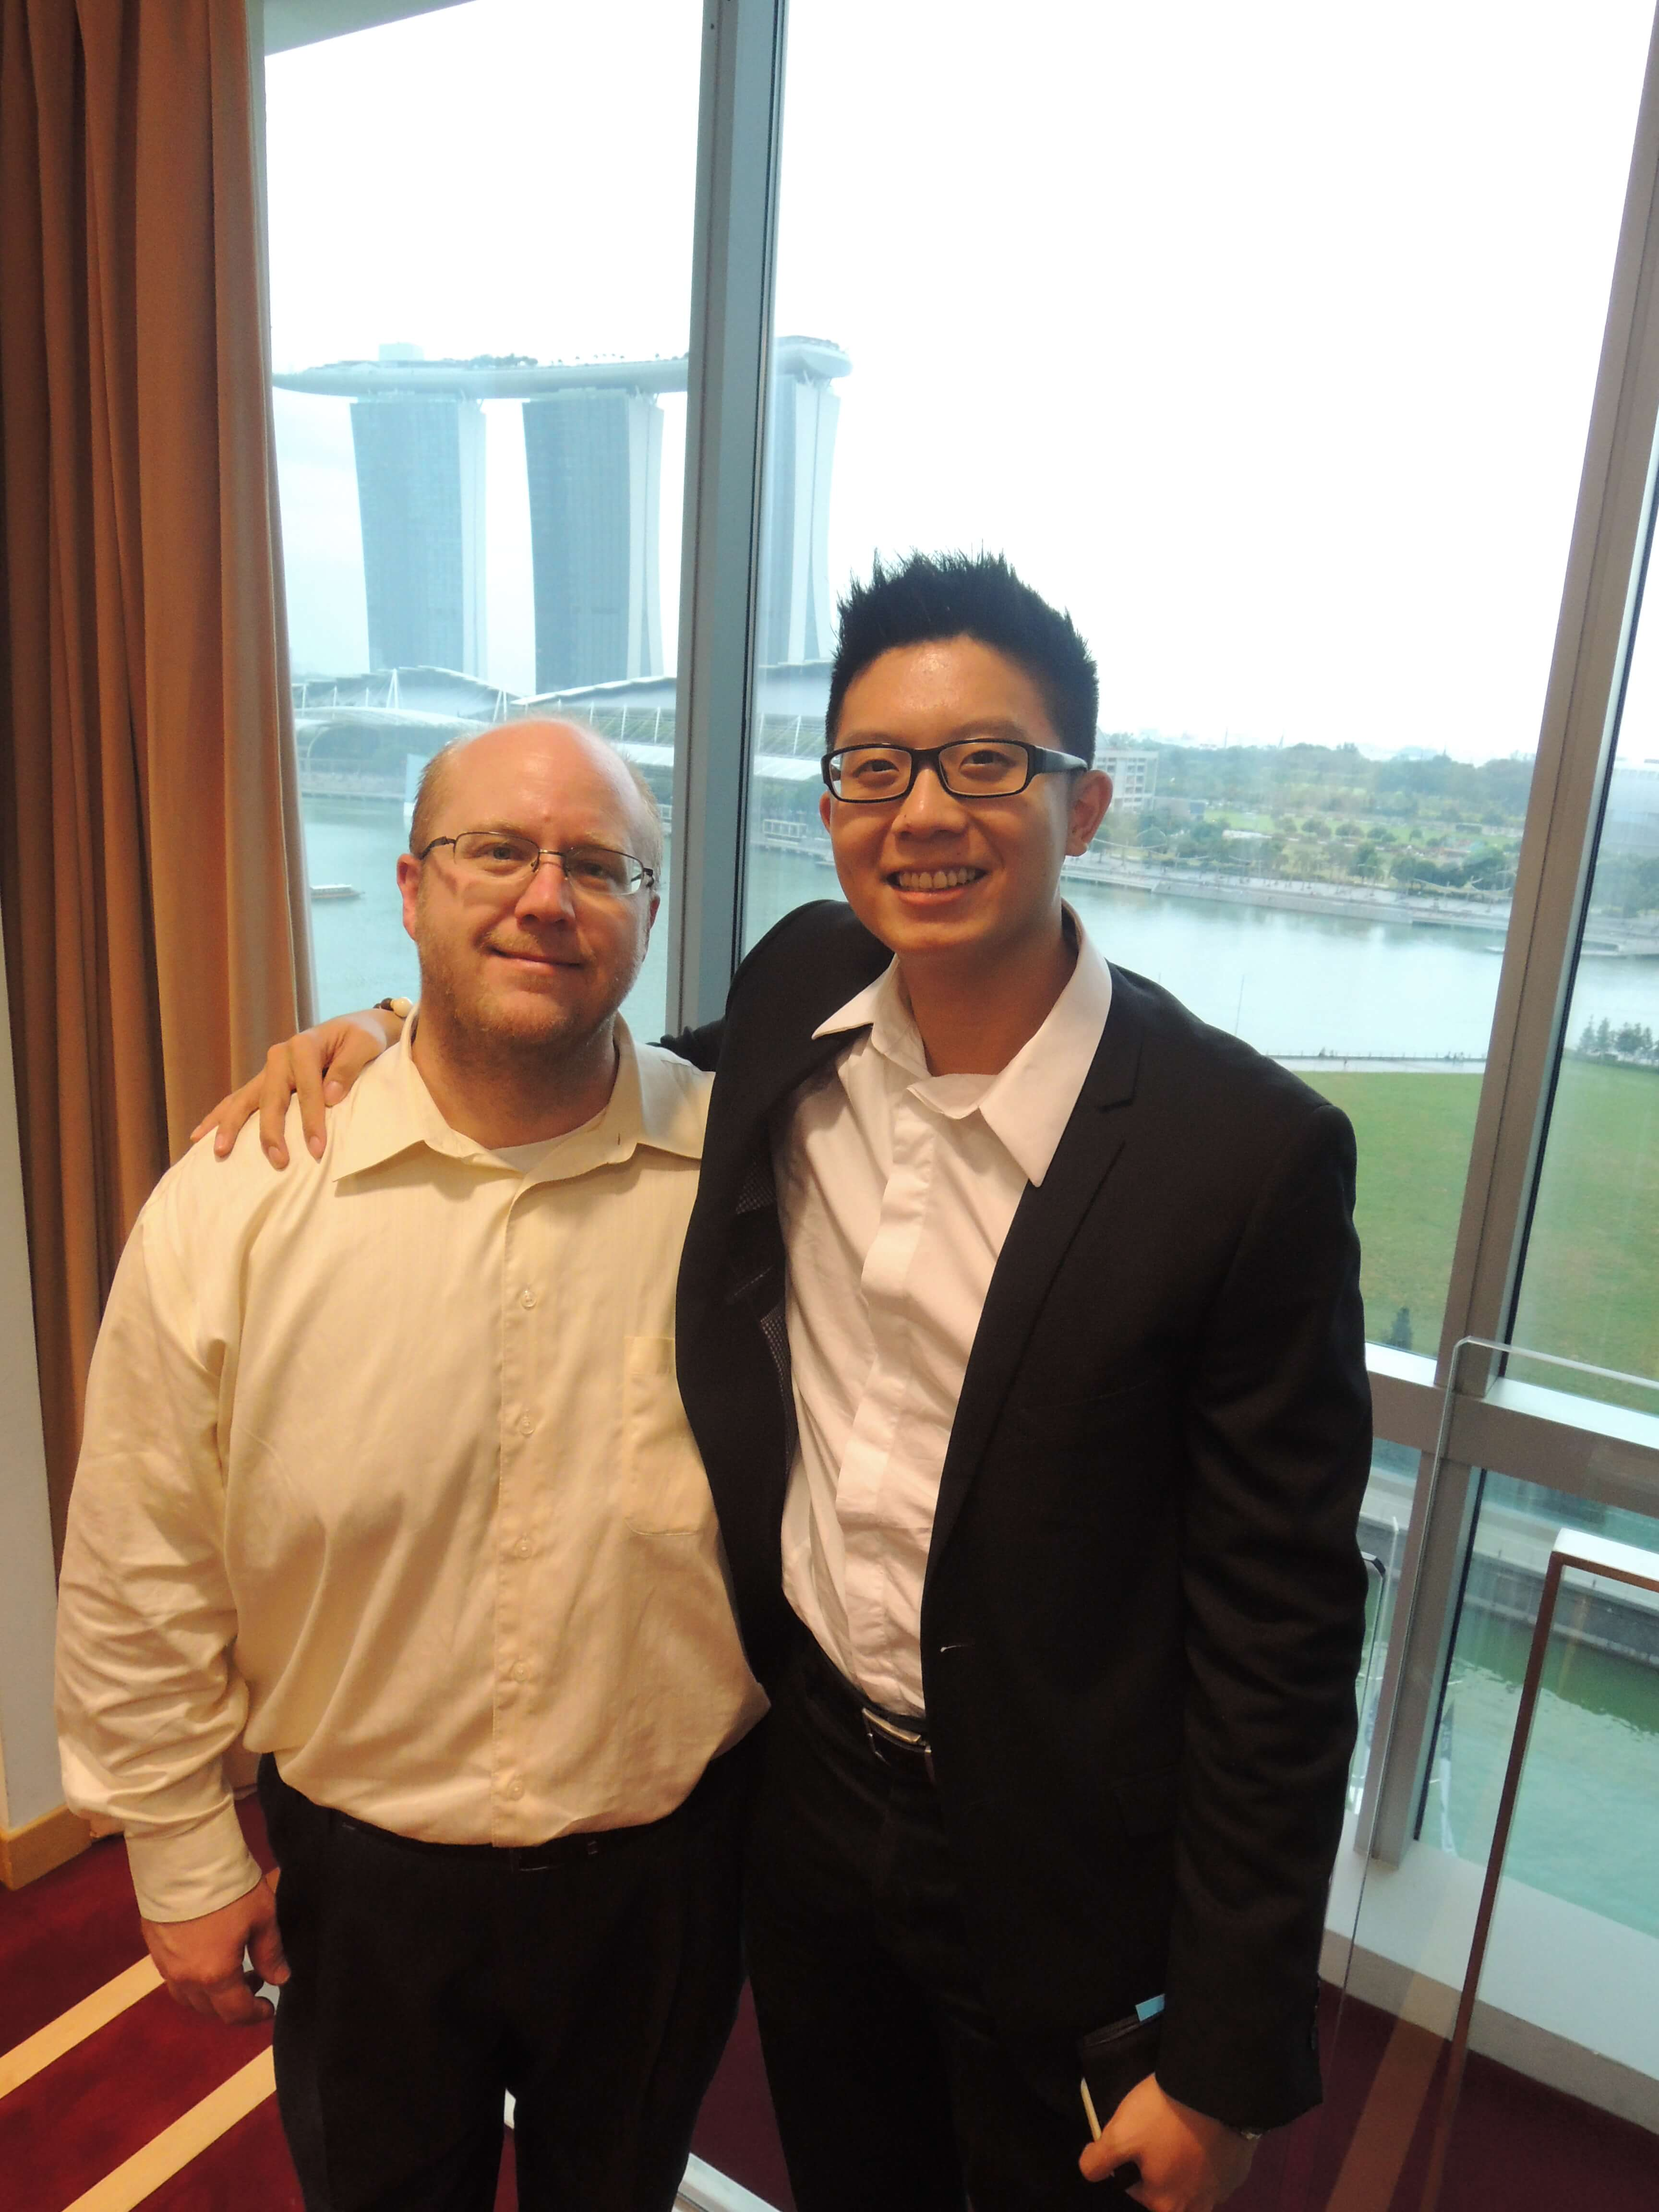 www.re-thinkwealth,sg, www.re-thinkwealth.com, www.christopherleesusanto.com With Brian Schkeryantz, Gryphone Growth Group Managing Director